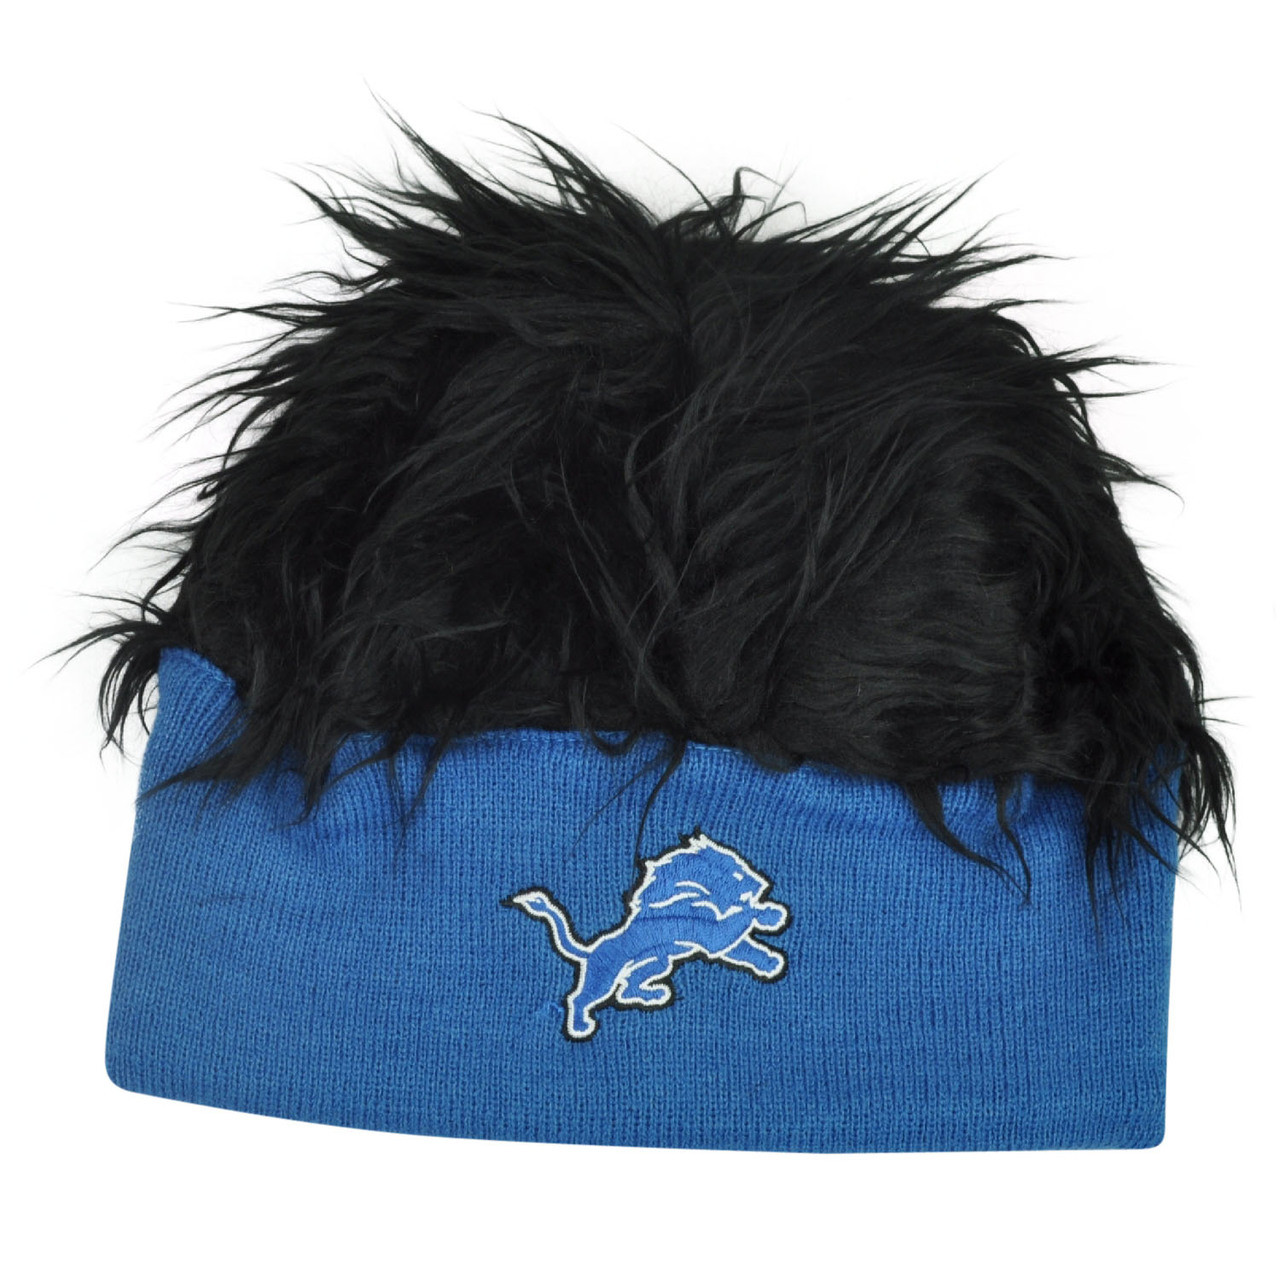 innovative design 73ab5 e7c1a NFL Detroit Lions Lure Fuzz Hair Headband Knit Beanie Fan Game Day Black  Hair